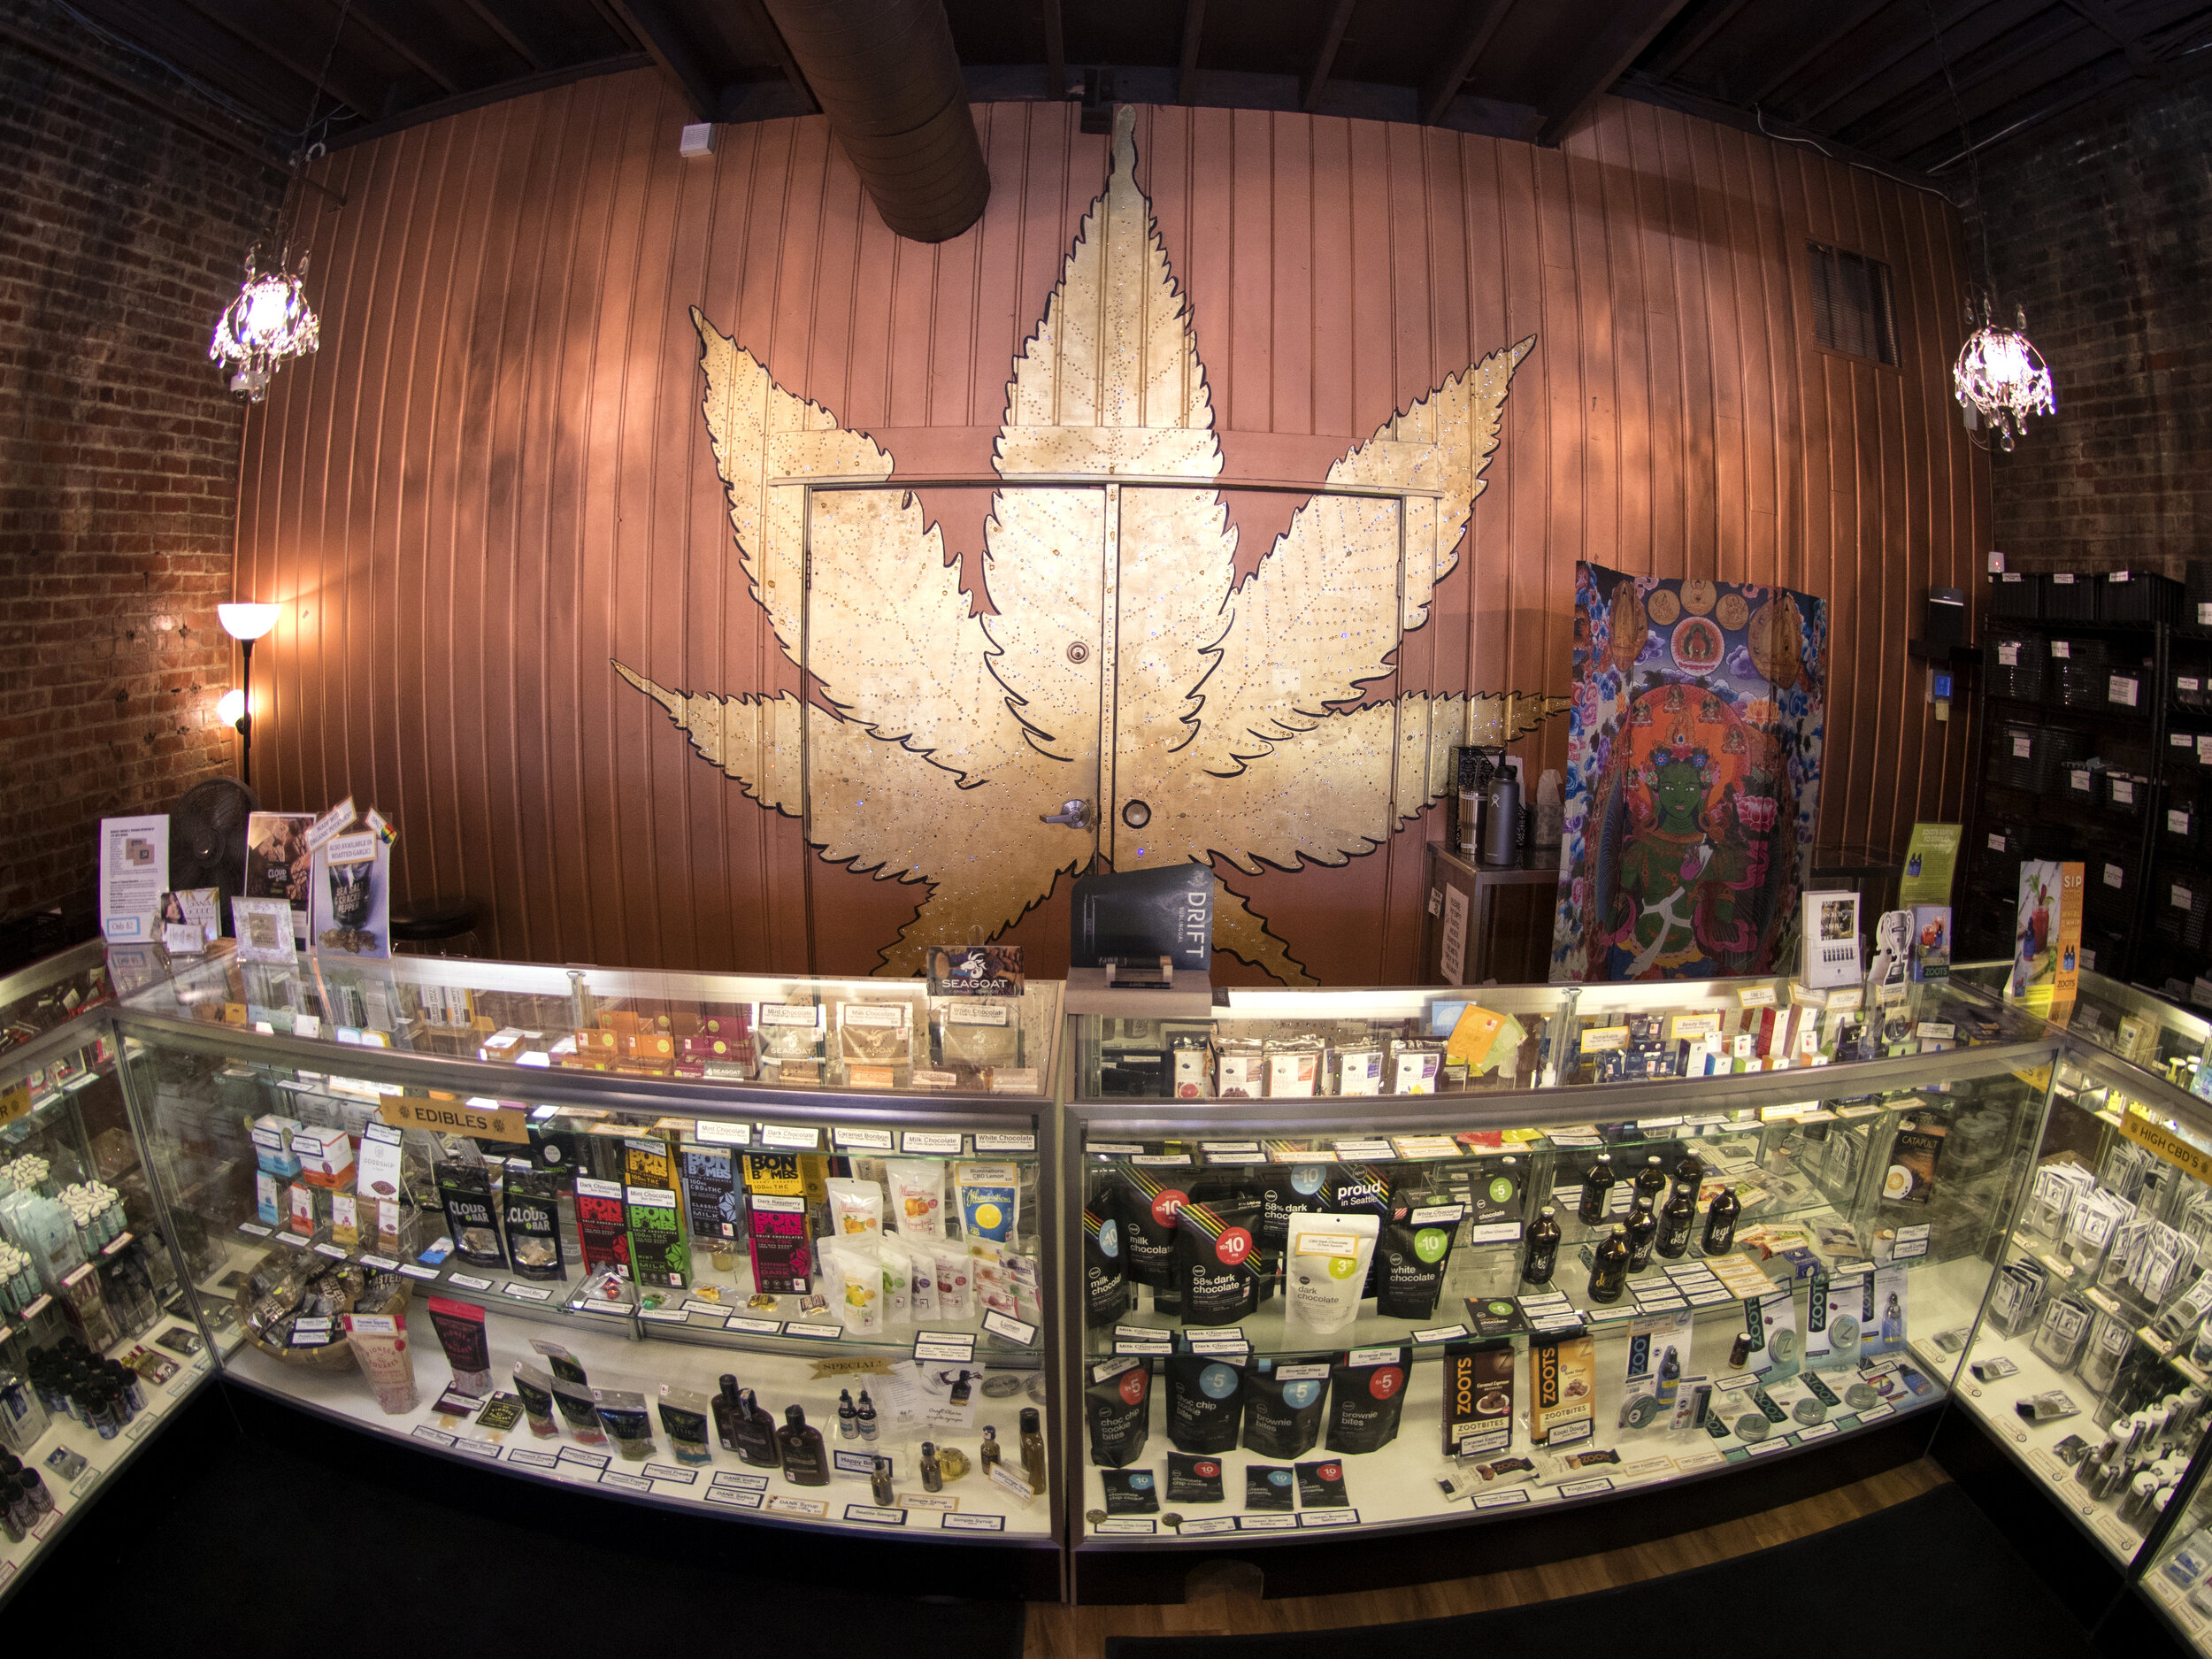 - Don't take our word for it. Take a look at some of the customer reviews we pulled from our Google Business page to see what others are saying about Ganja Goddess.